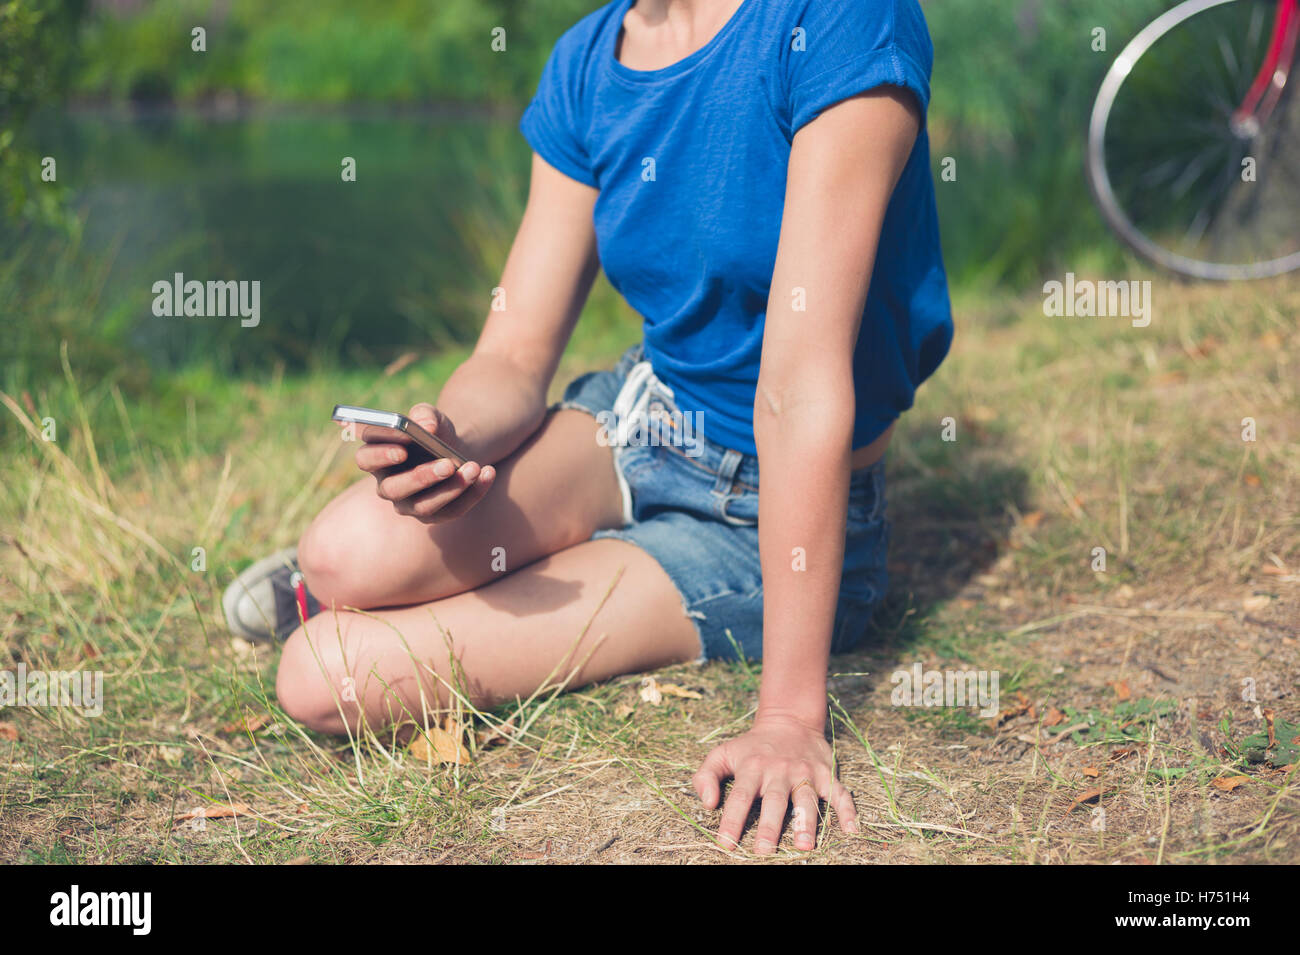 A young woman is sitting by the water in a park and is using a smart phone - Stock Image